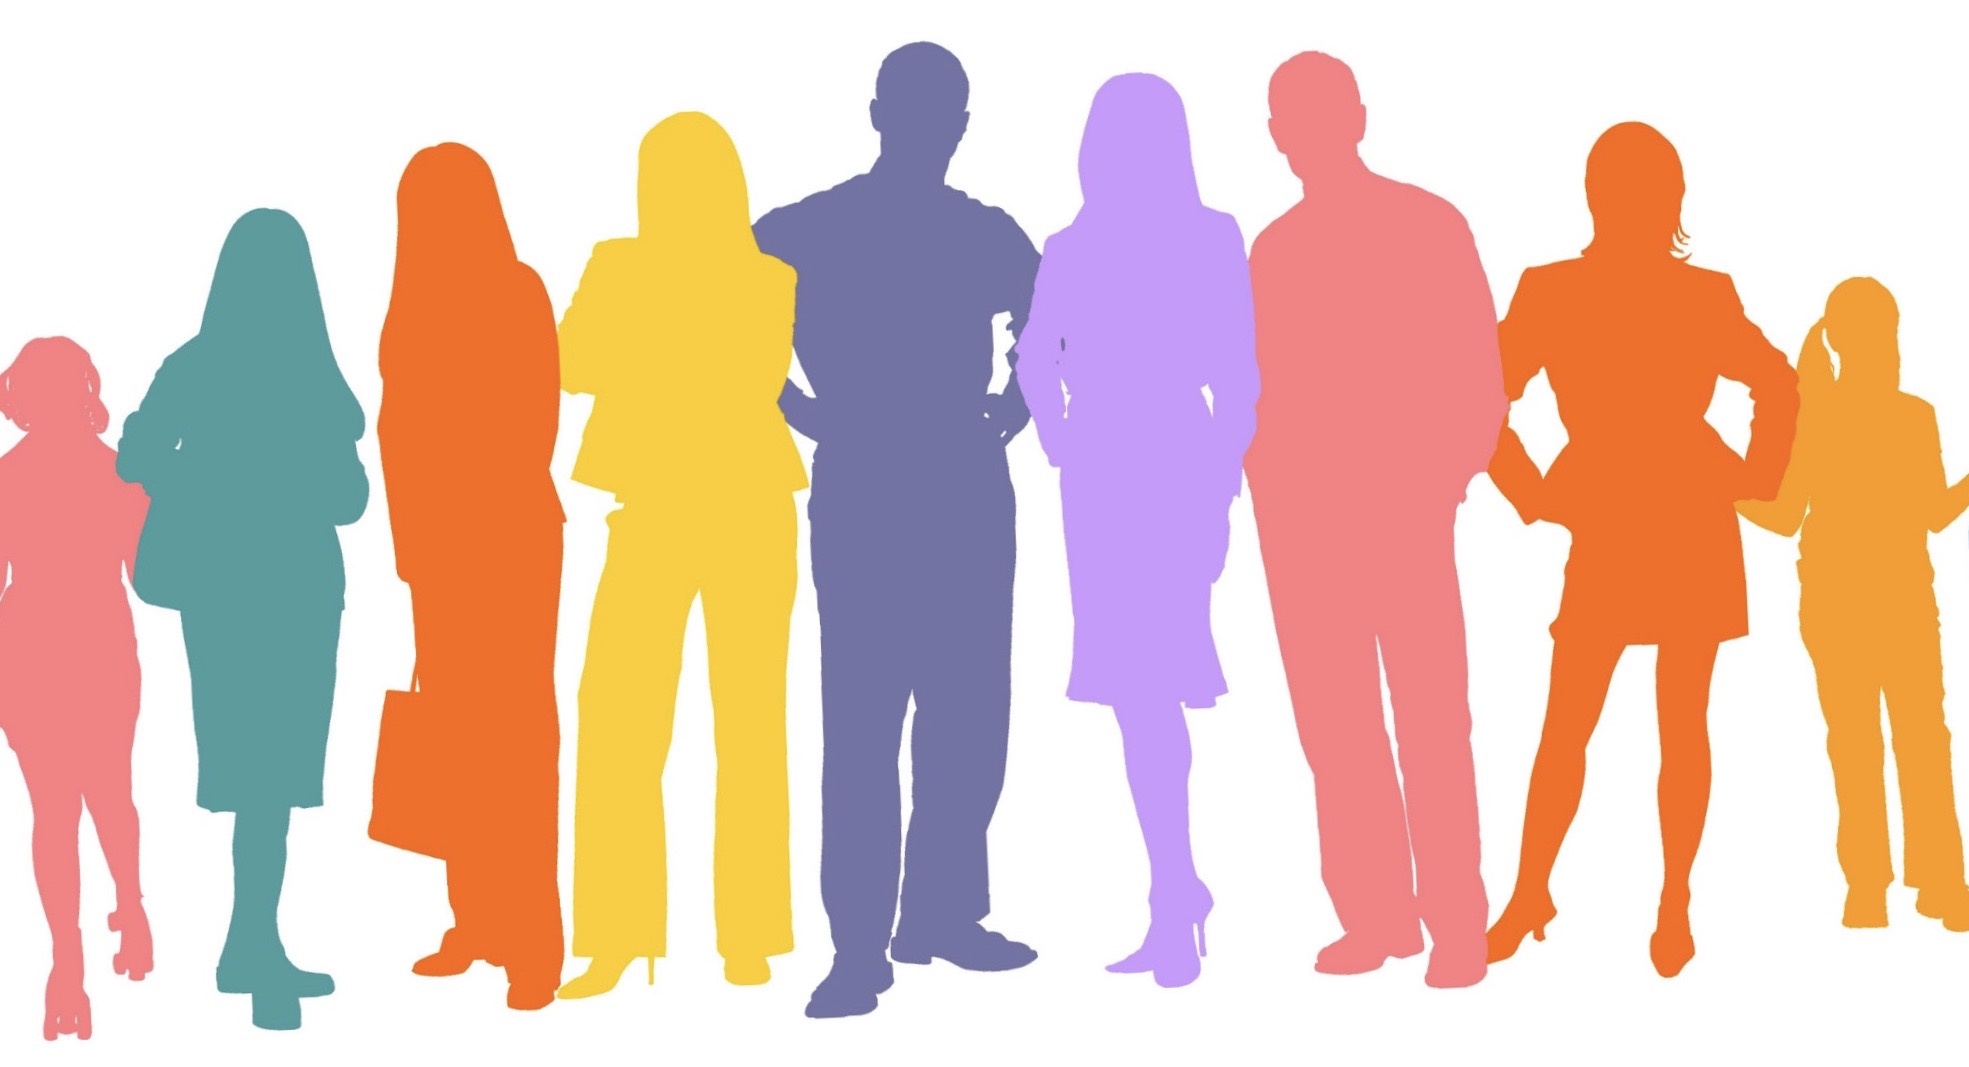 A row of peoples outlines boldly coloured in